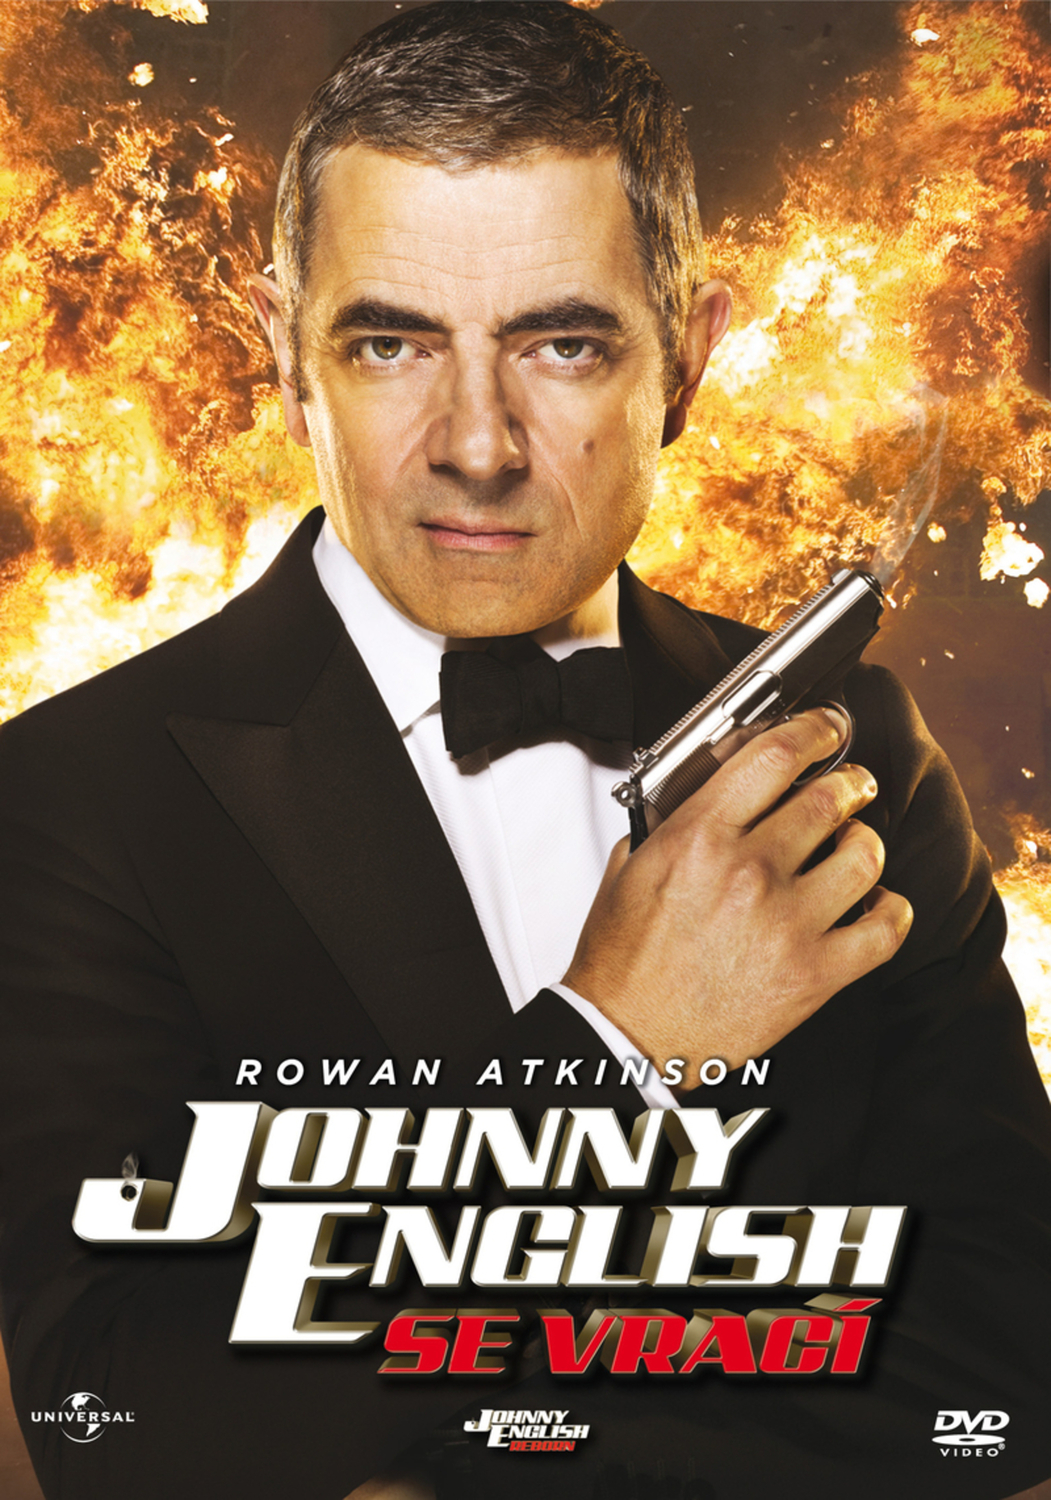 Johnny English se vrací | Fandíme filmu